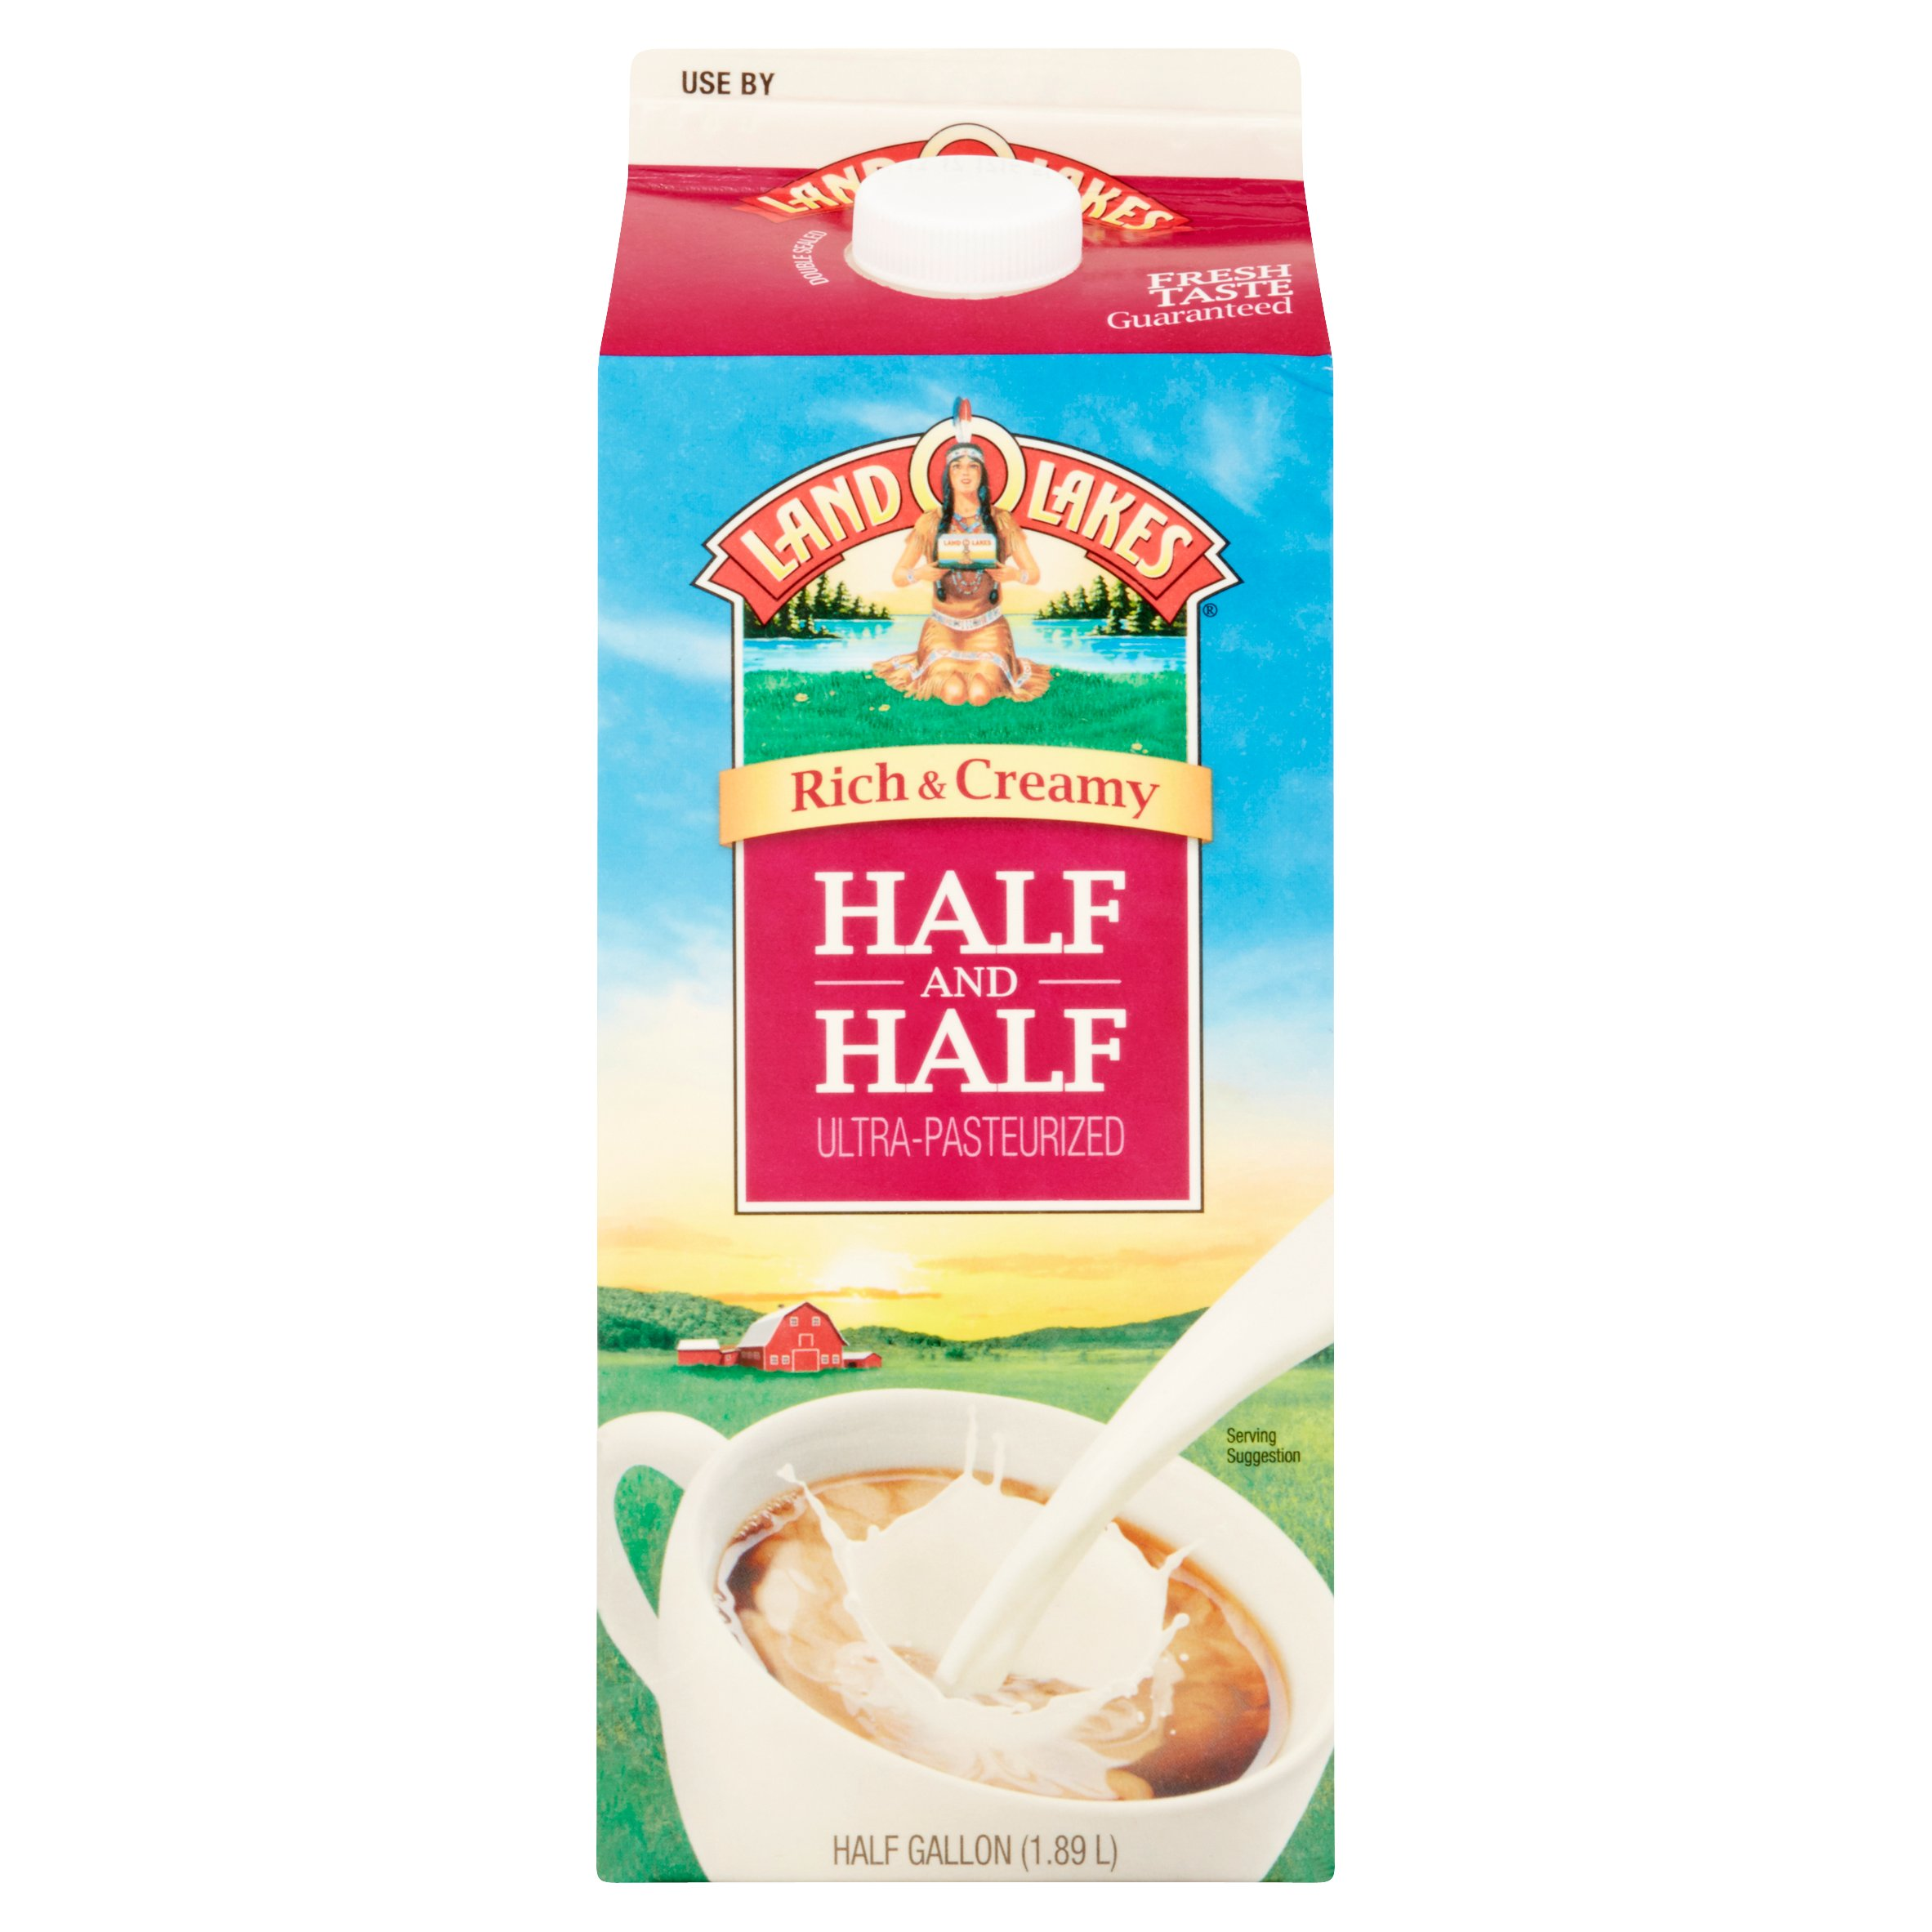 Land O Lakes Rich & Creamy Half and Half Ultra-Pasteurized Milk, 1/2 Gallon